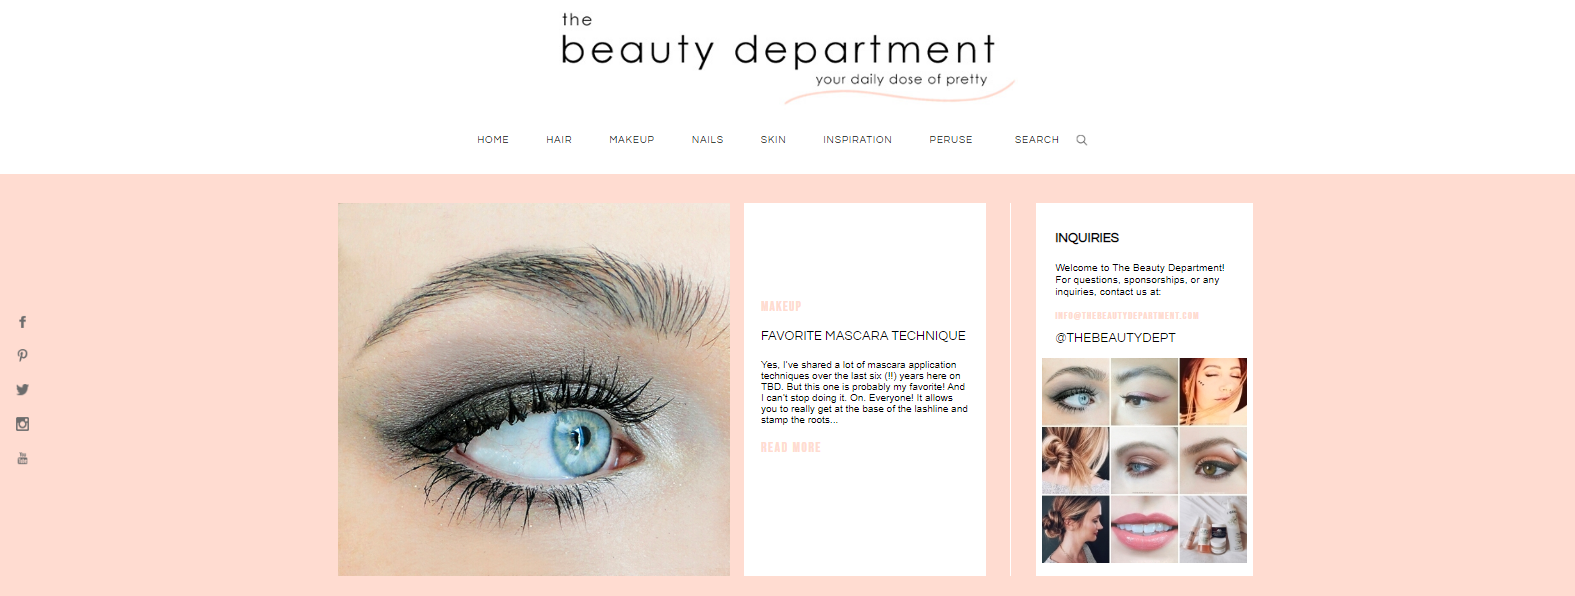 The beauty department: Style blog and website